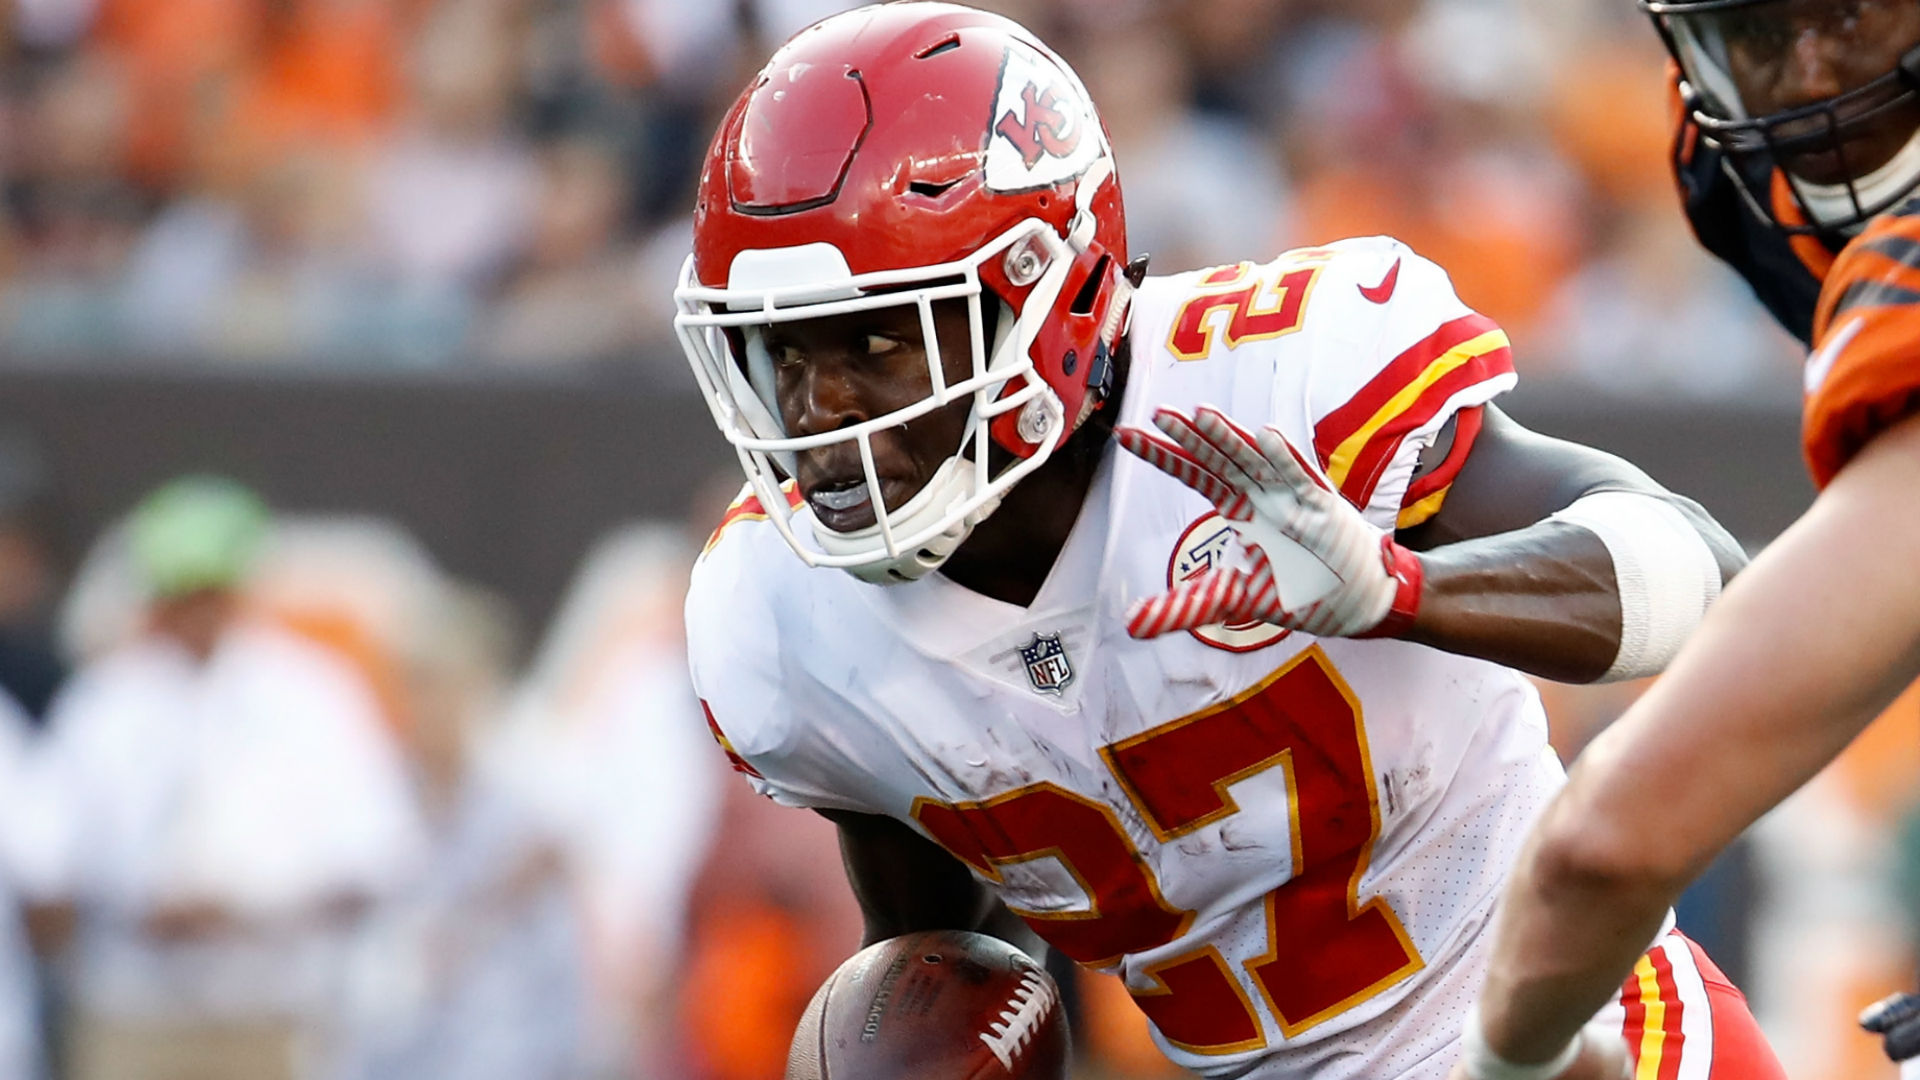 Kareem Hunt to begin season as Chiefs' featured back | NFL | Sporting News